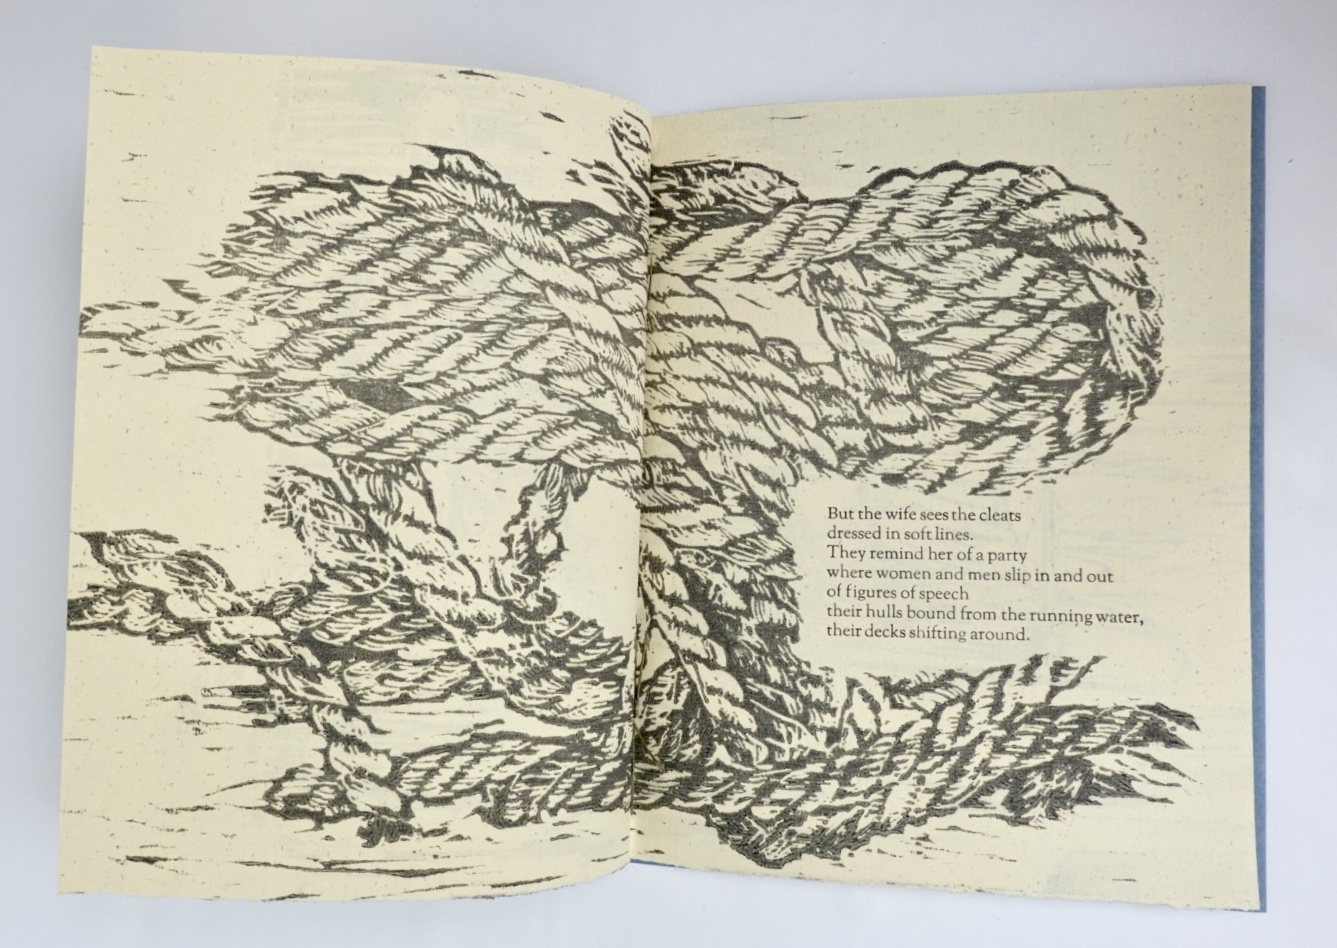 third/fourth pages with wood cut relief imagery and second stanza of poem